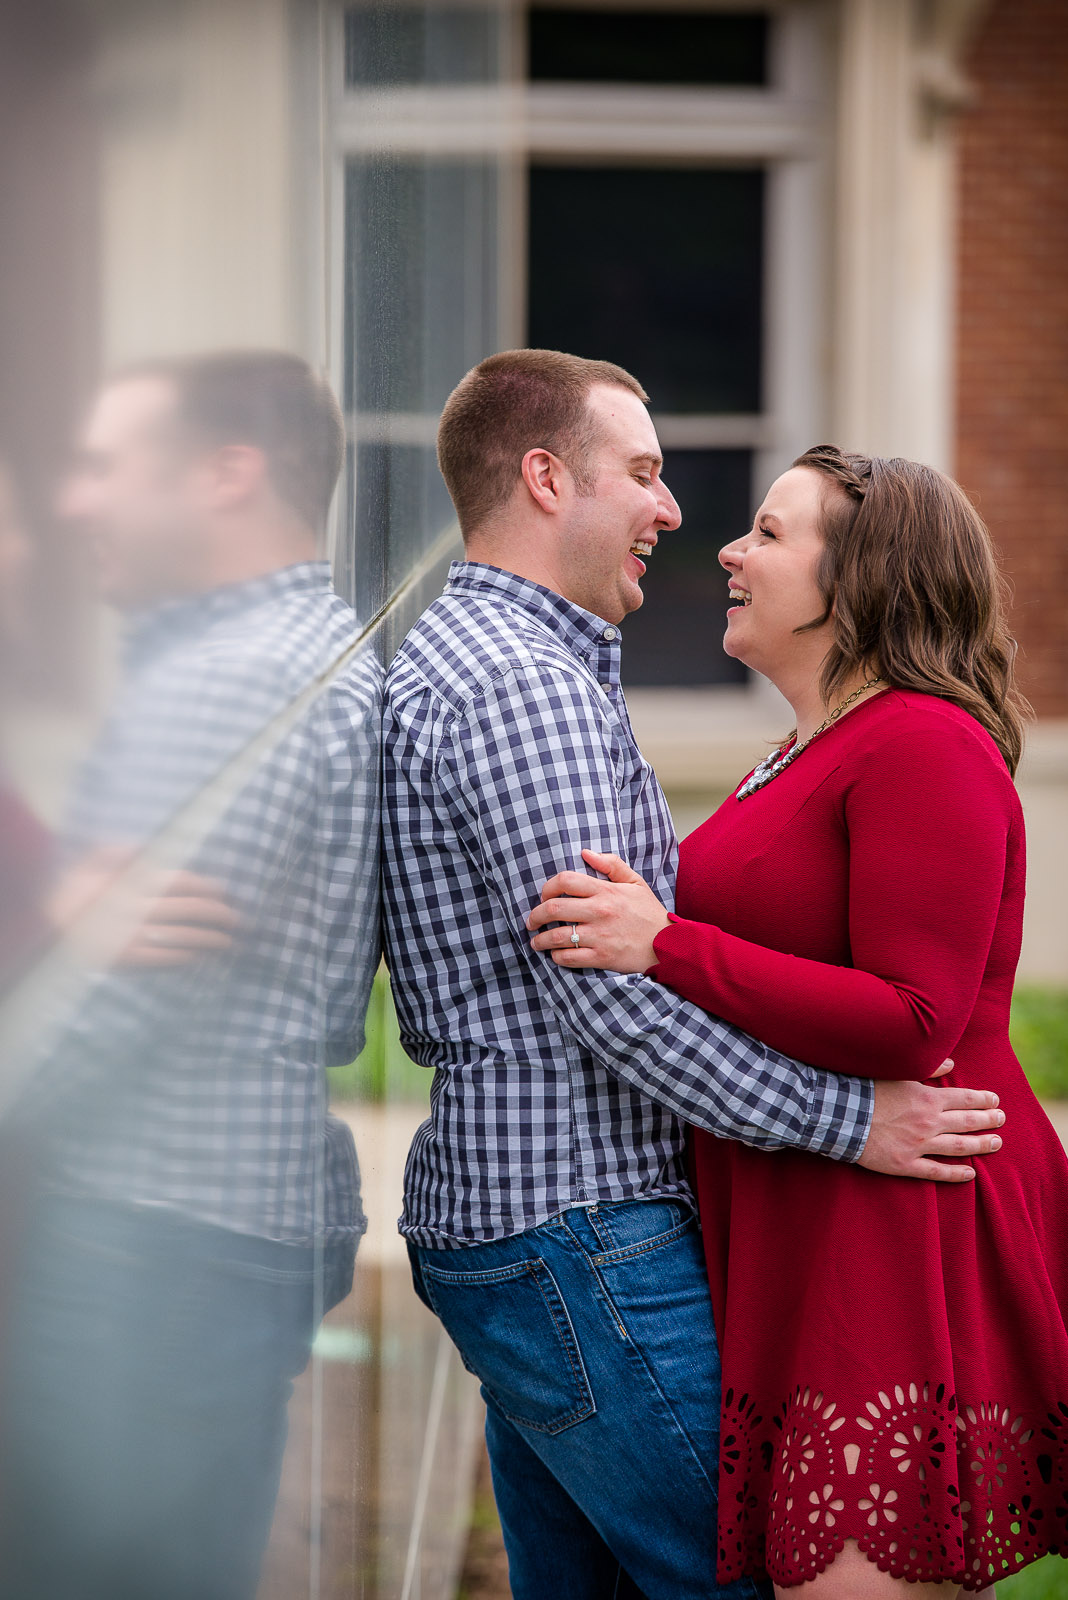 Eric_and_Christy_Photography_Blog_Stacey_Geoff_Engagement-24